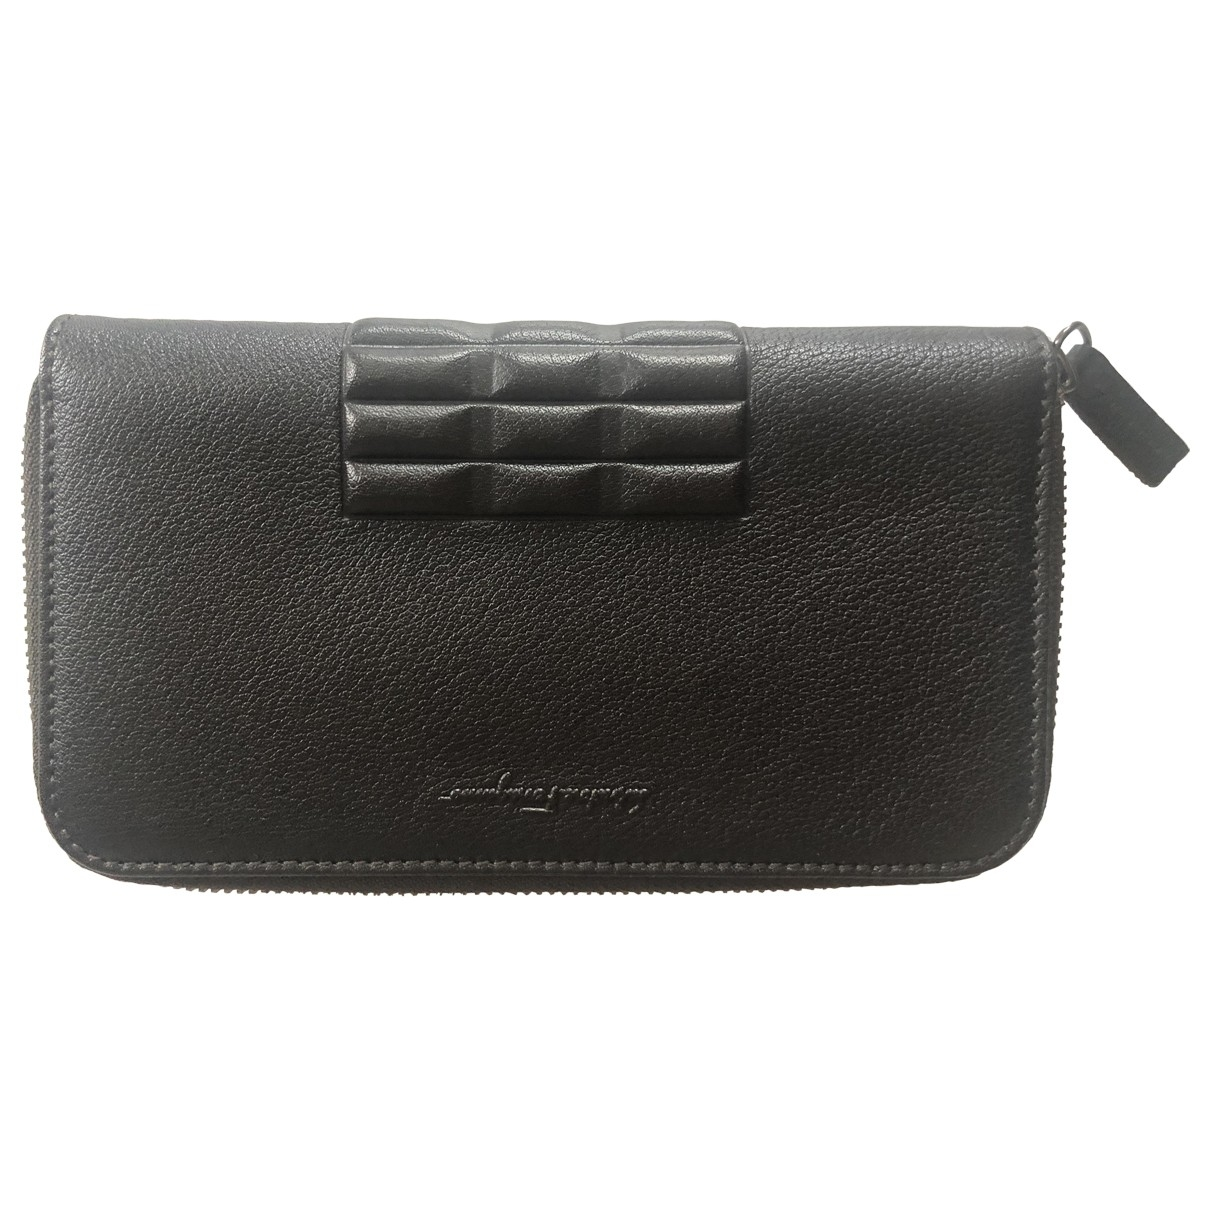 Salvatore Ferragamo \N Brown Leather wallet for Women \N